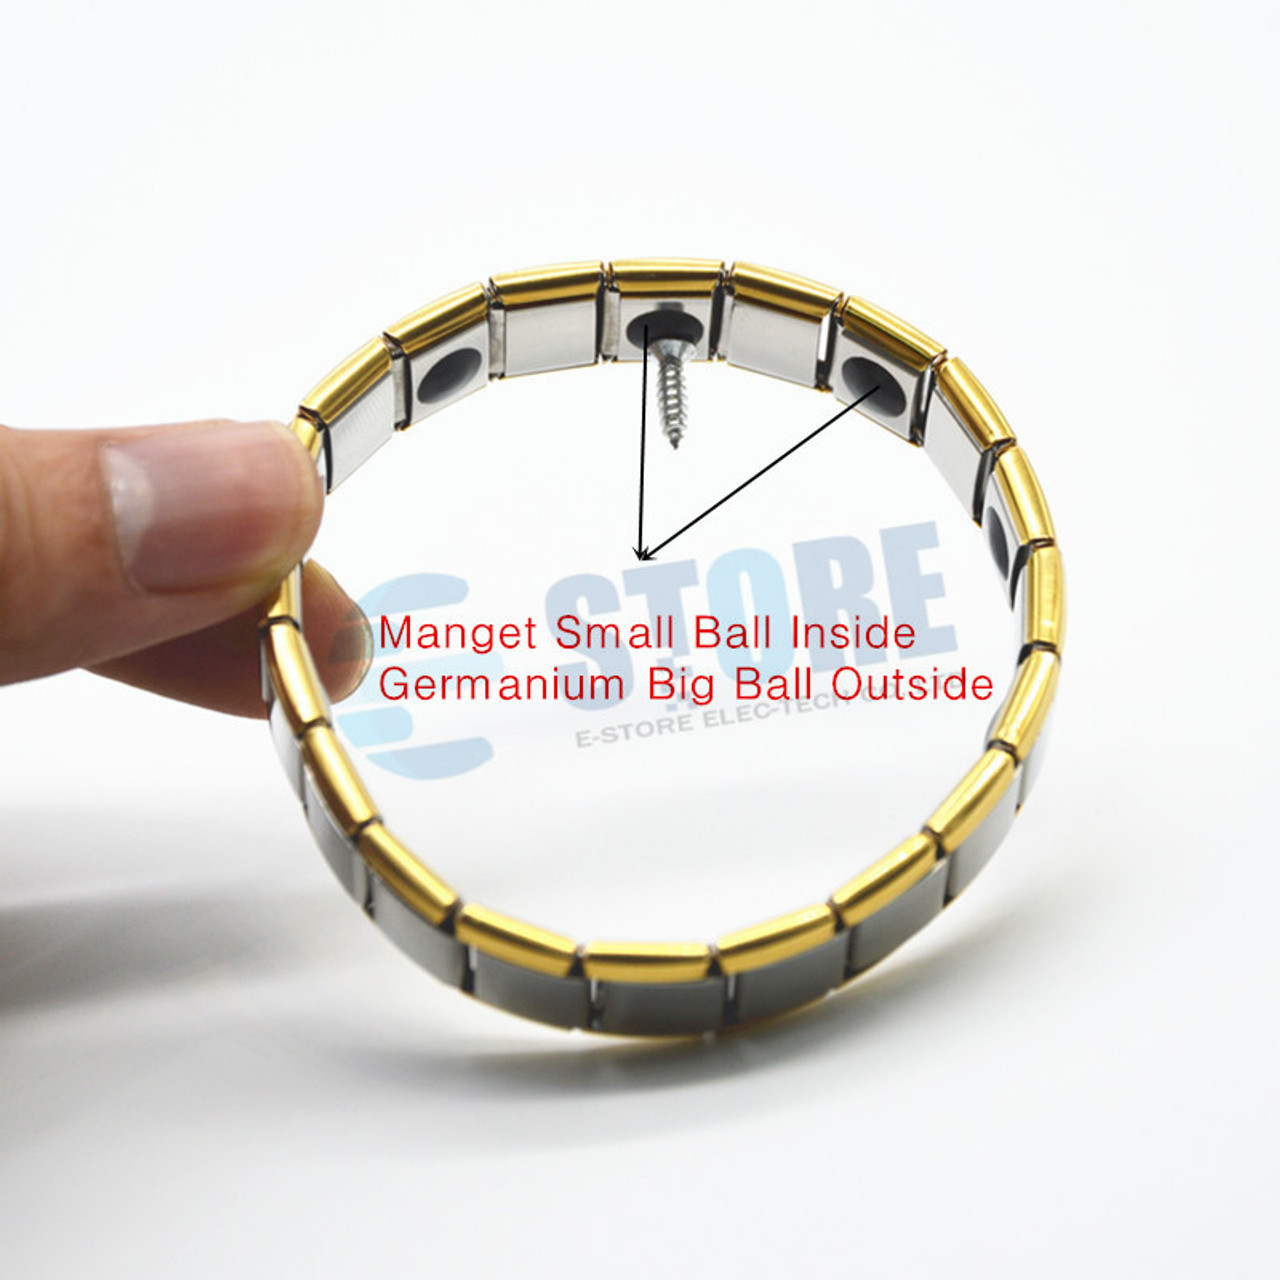 b01dcf34f4ff9 ... 10pcs Magnetic Bracelet Men Stainless Steel Bangles Power Energy  Wristband With Germanium Stone Health Fashion Jewelry ...